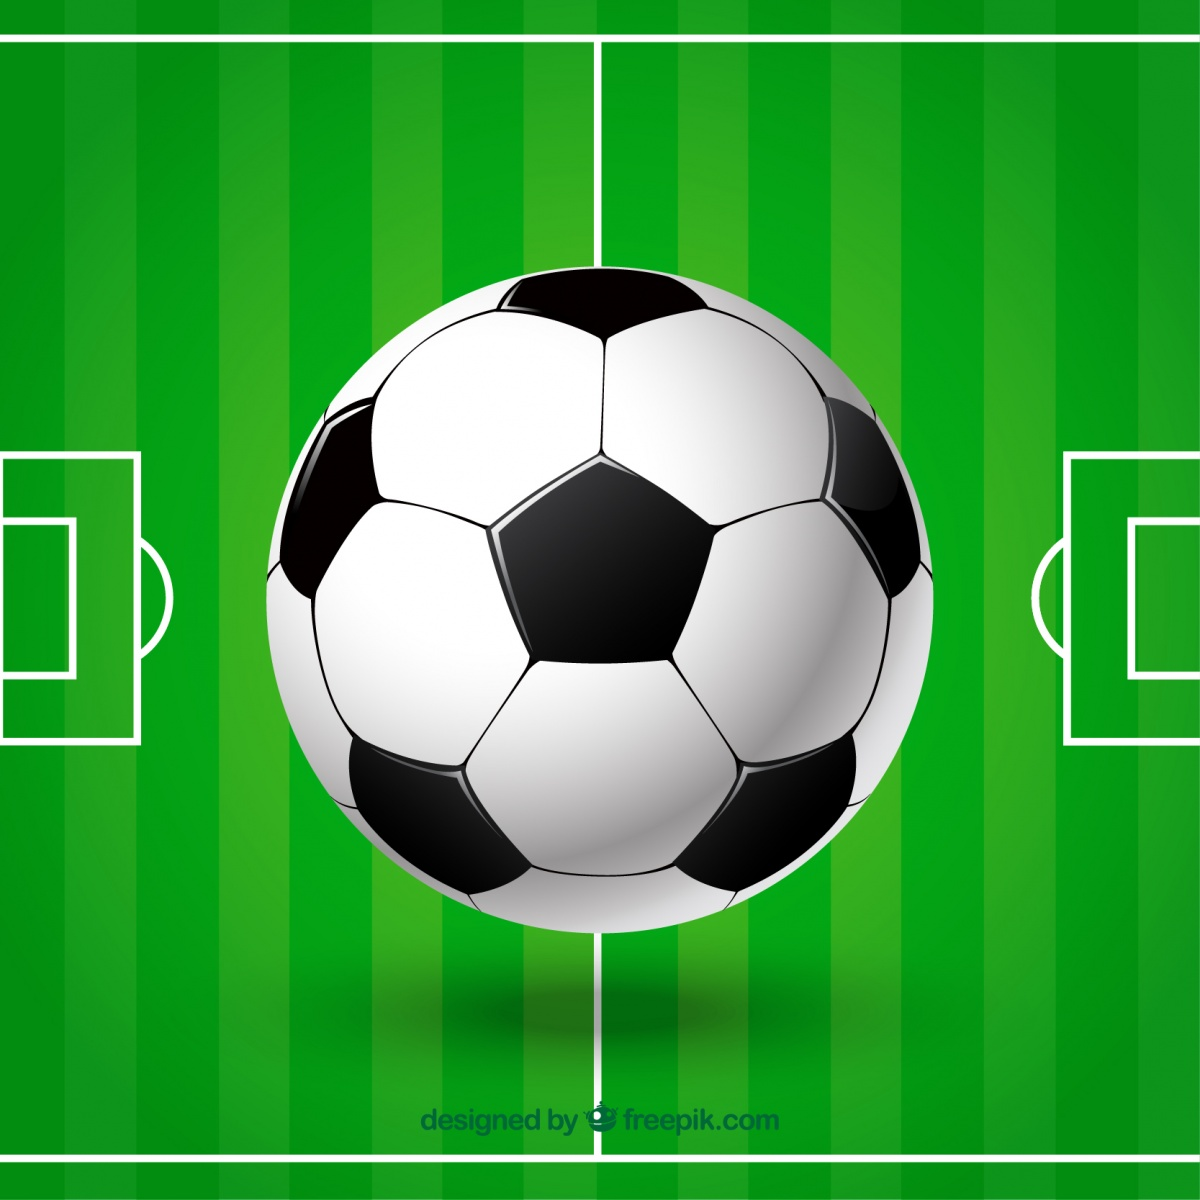 "<a href=""http://www.freepik.com/free-vector/ball-and-soccer-field_796510.htm"">Designed by Freepik</a>"